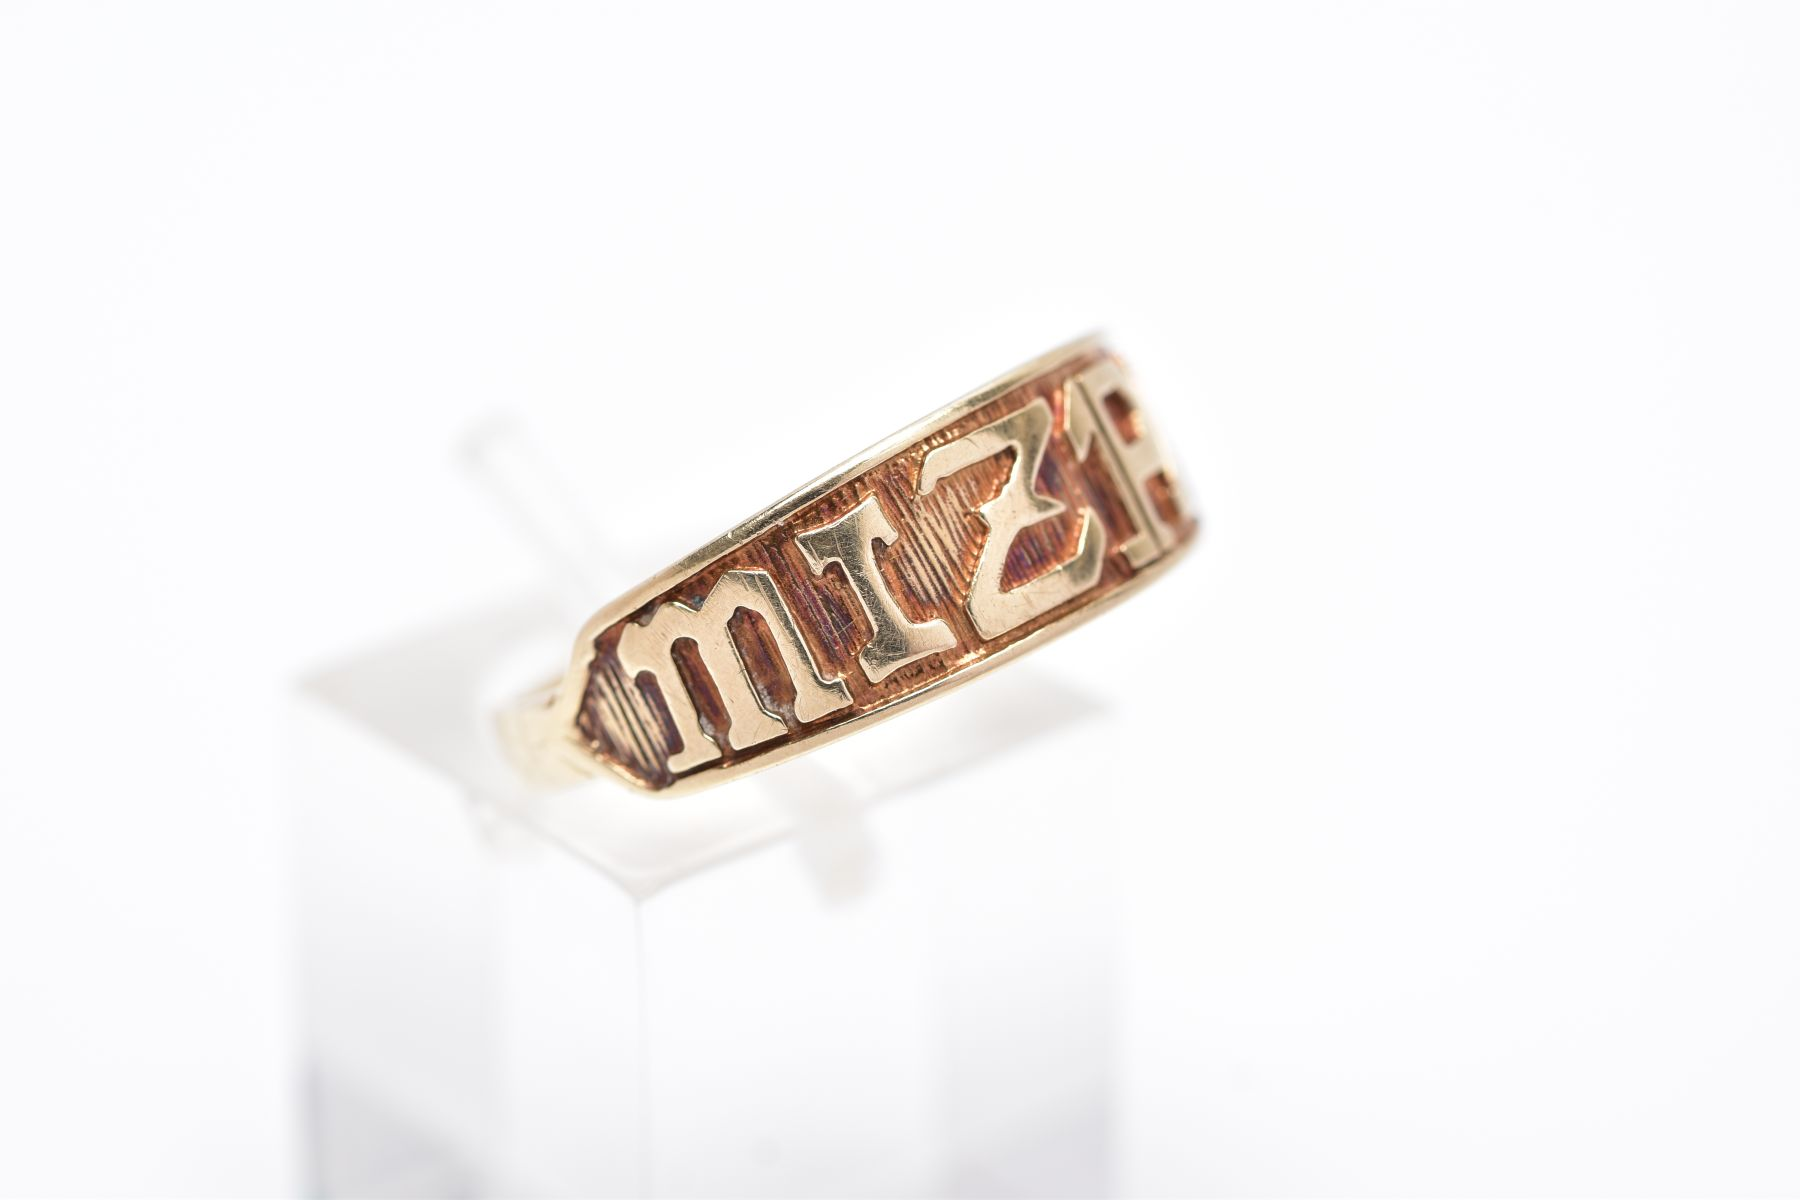 A 9CT GOLD 'MIZPAH' RING, inscribed 'Mizpah' band, with a textured background, hallmarked 9ct gold - Image 4 of 4